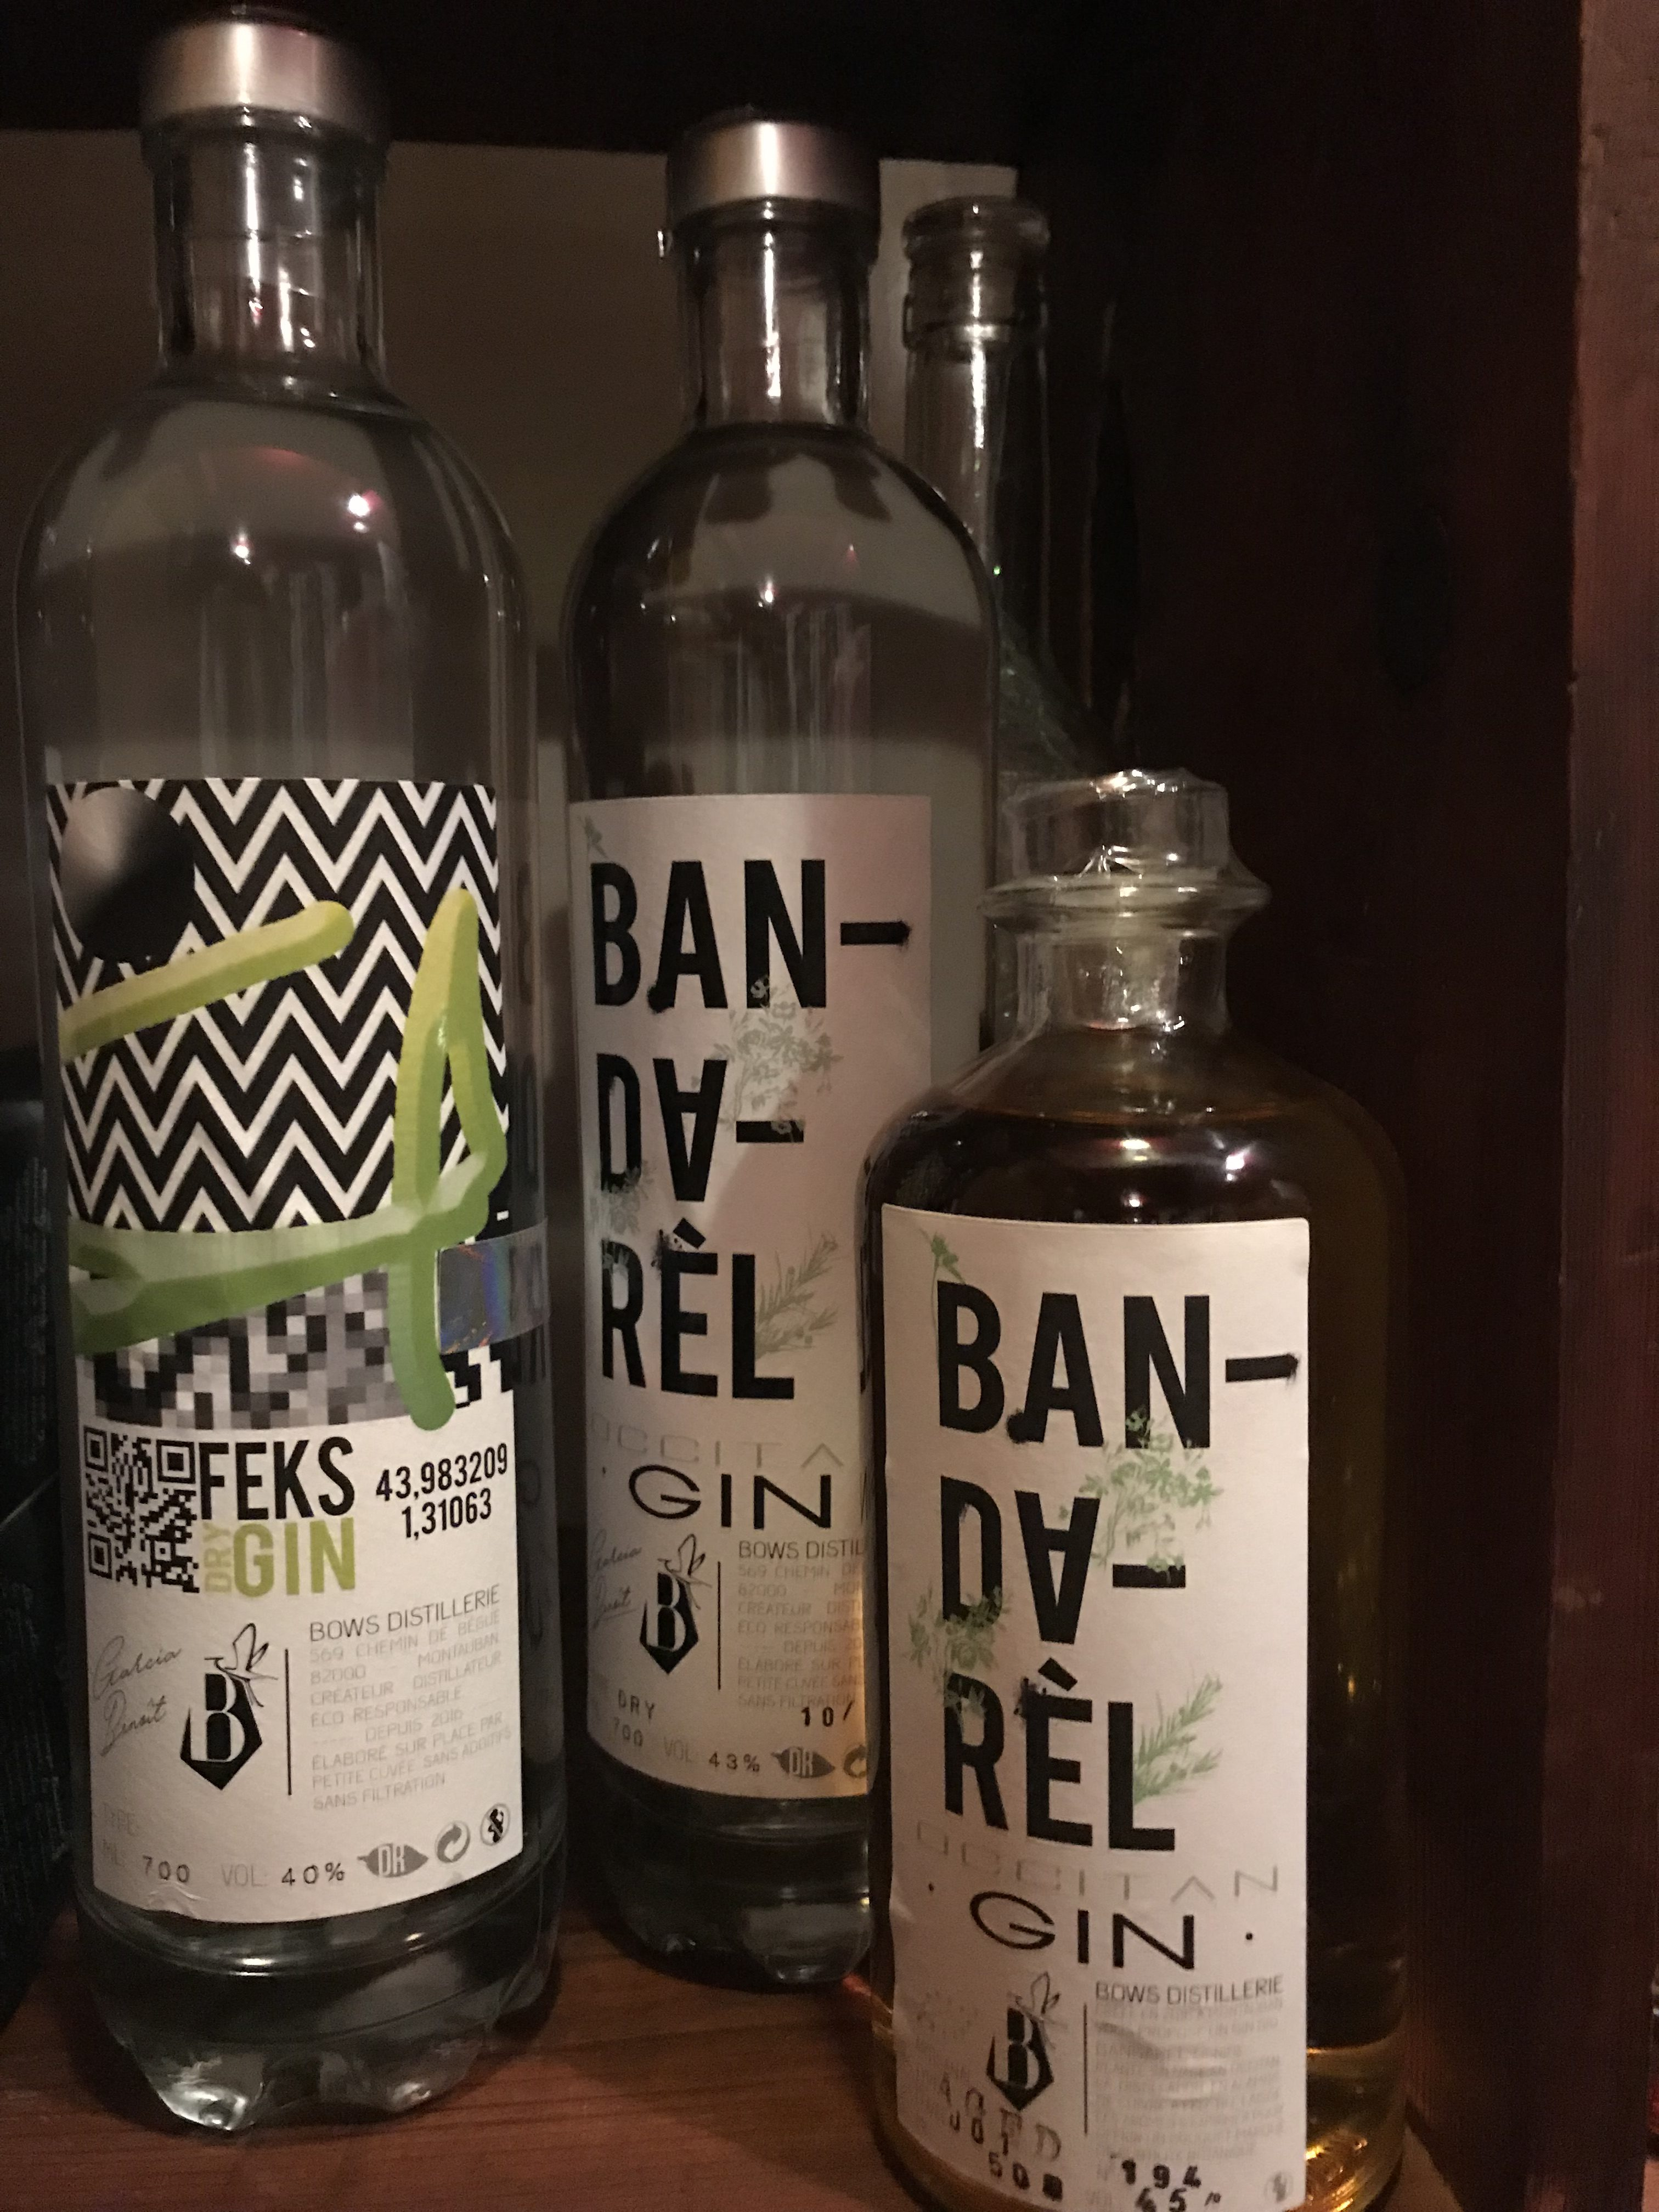 BOW'S DISTILLERIE - SELECTION GIN